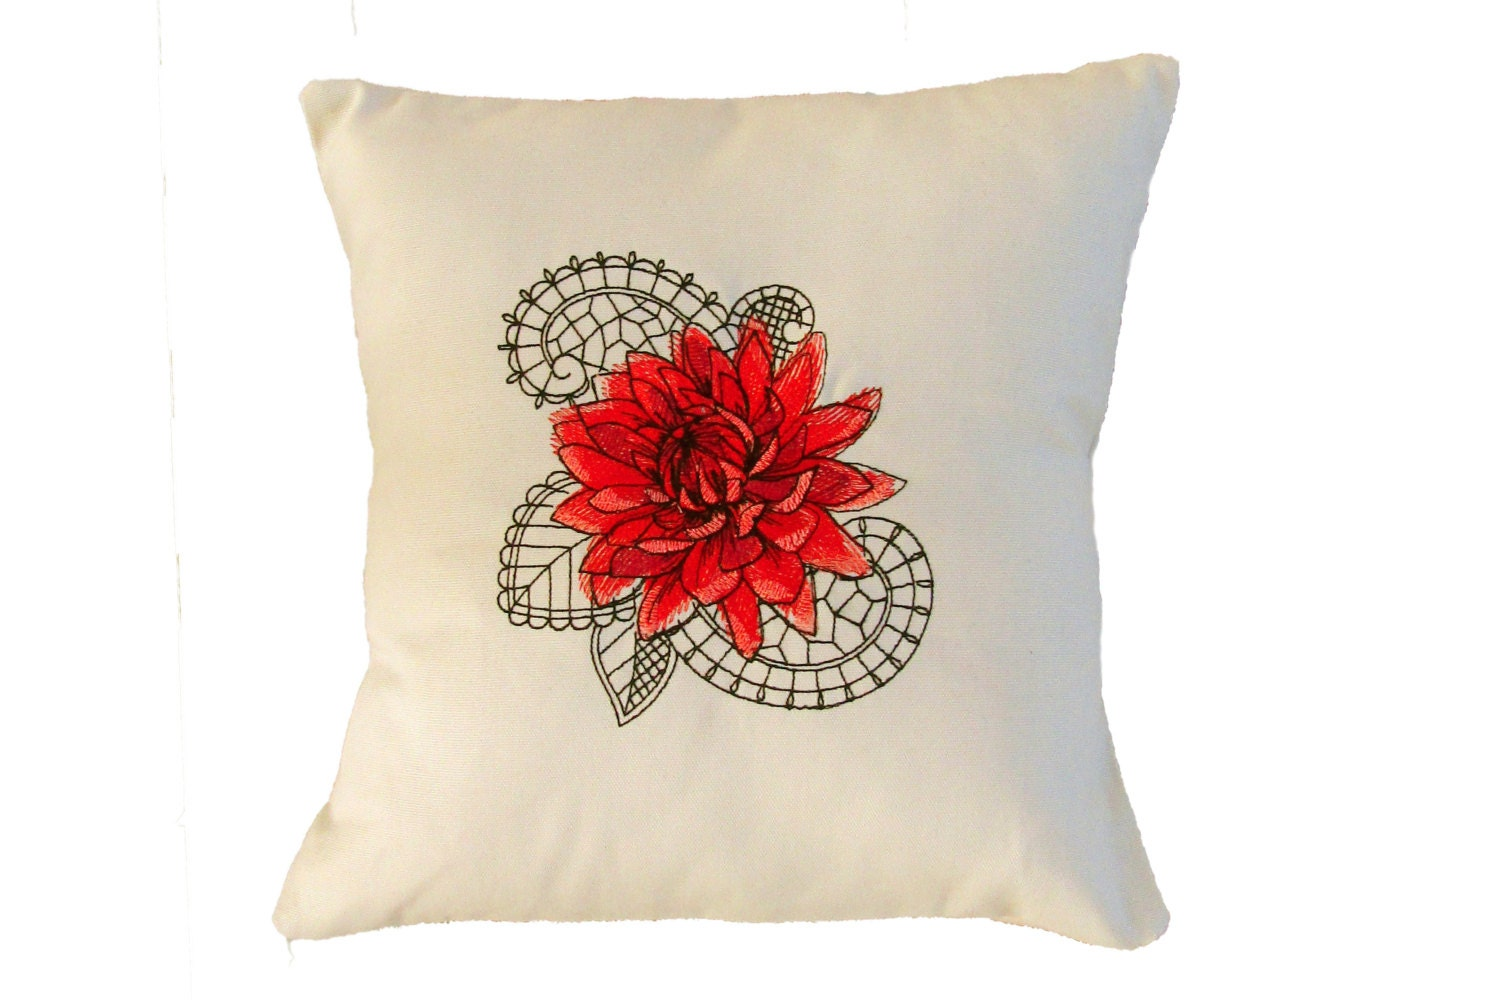 Decorative Pillows Flowers : Decorative Flower Pillow Cover-Throw Pillow Cover-Boho Pillow